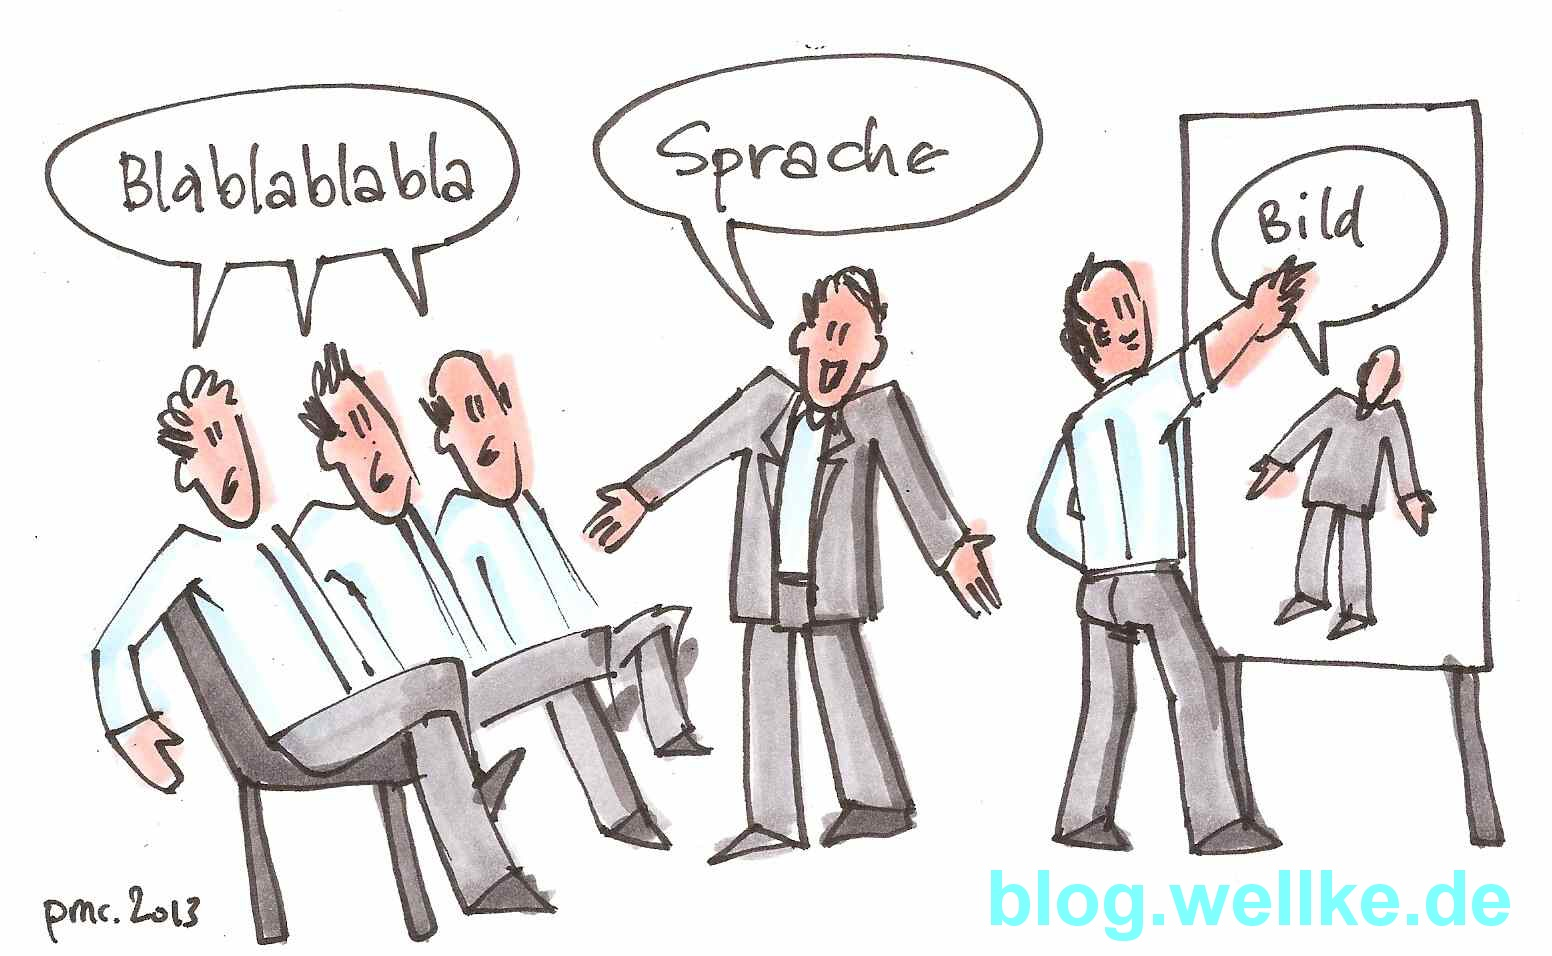 15 - Sprache ist metaphorisch_Metaphern_visuell darstellen_Graphic Recording_Workshopmoderation_Organisationsentwicklung